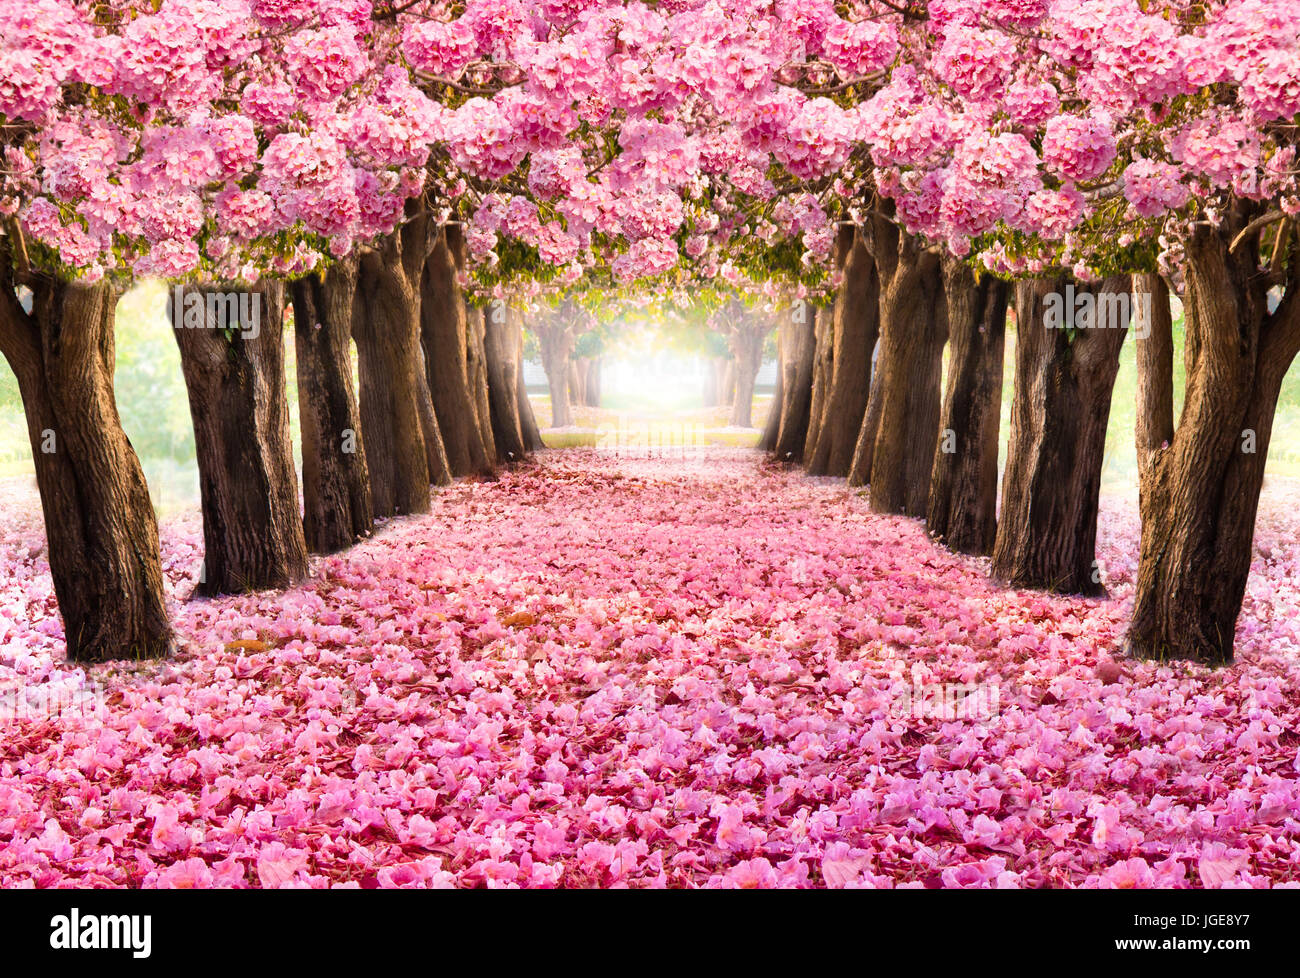 The Romantic Tunnel Of Pink Flower Treesblossom Blooming In Spring